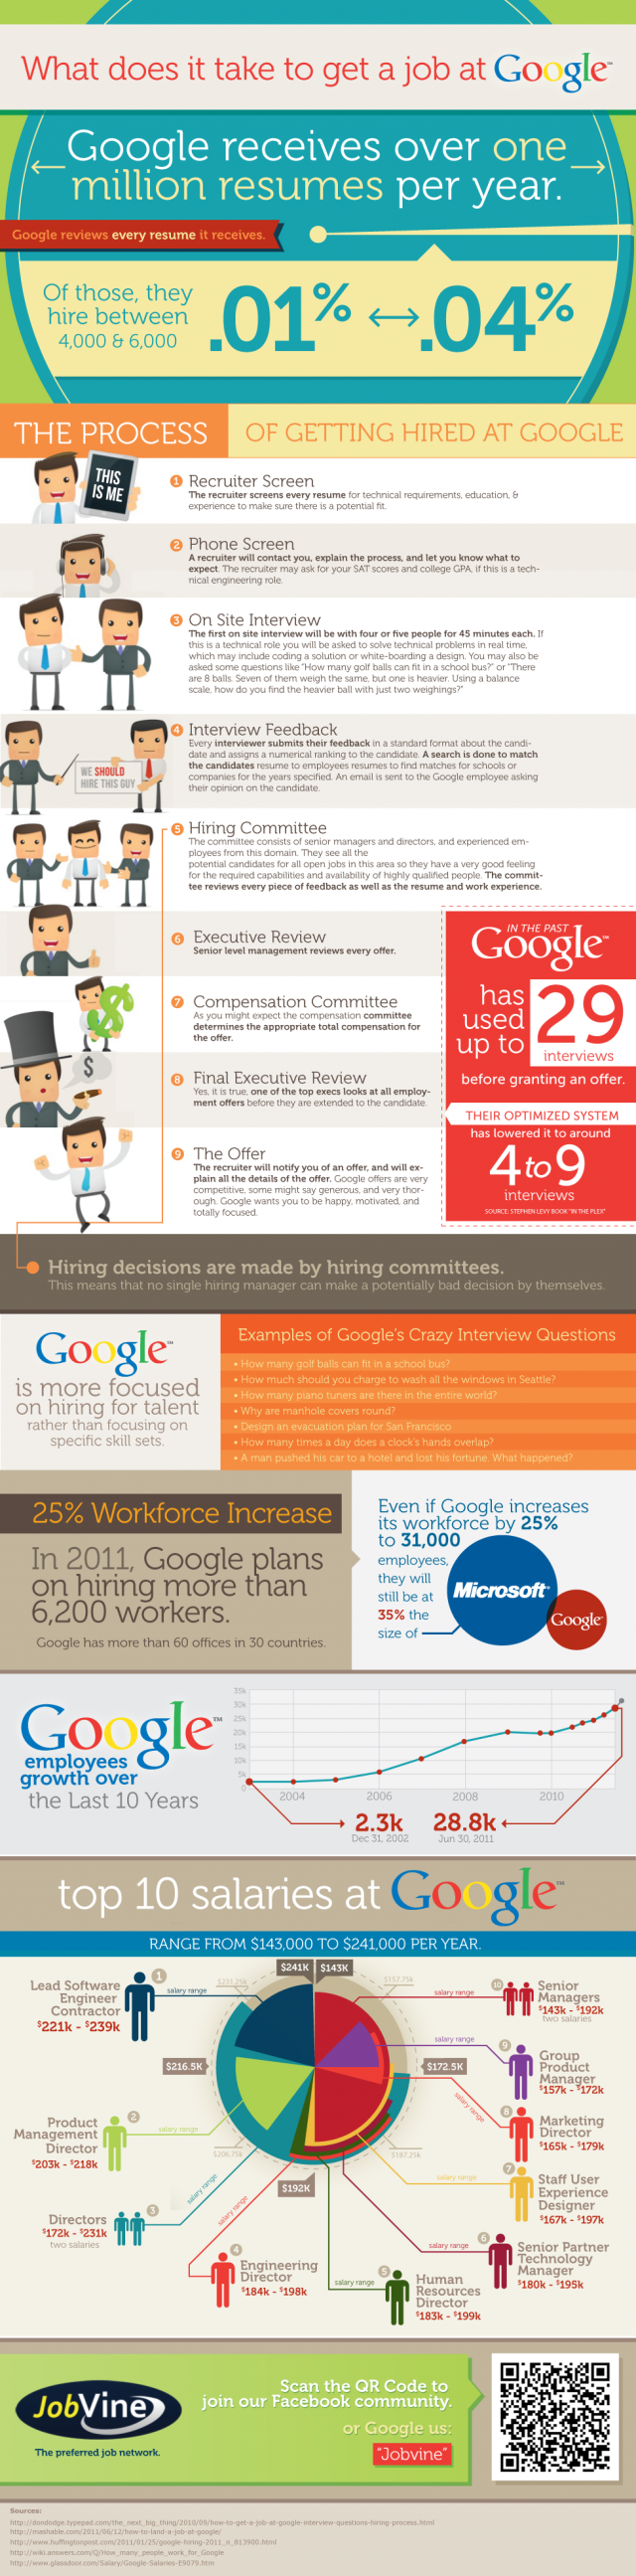 An infographic that takes you through the Google job application process